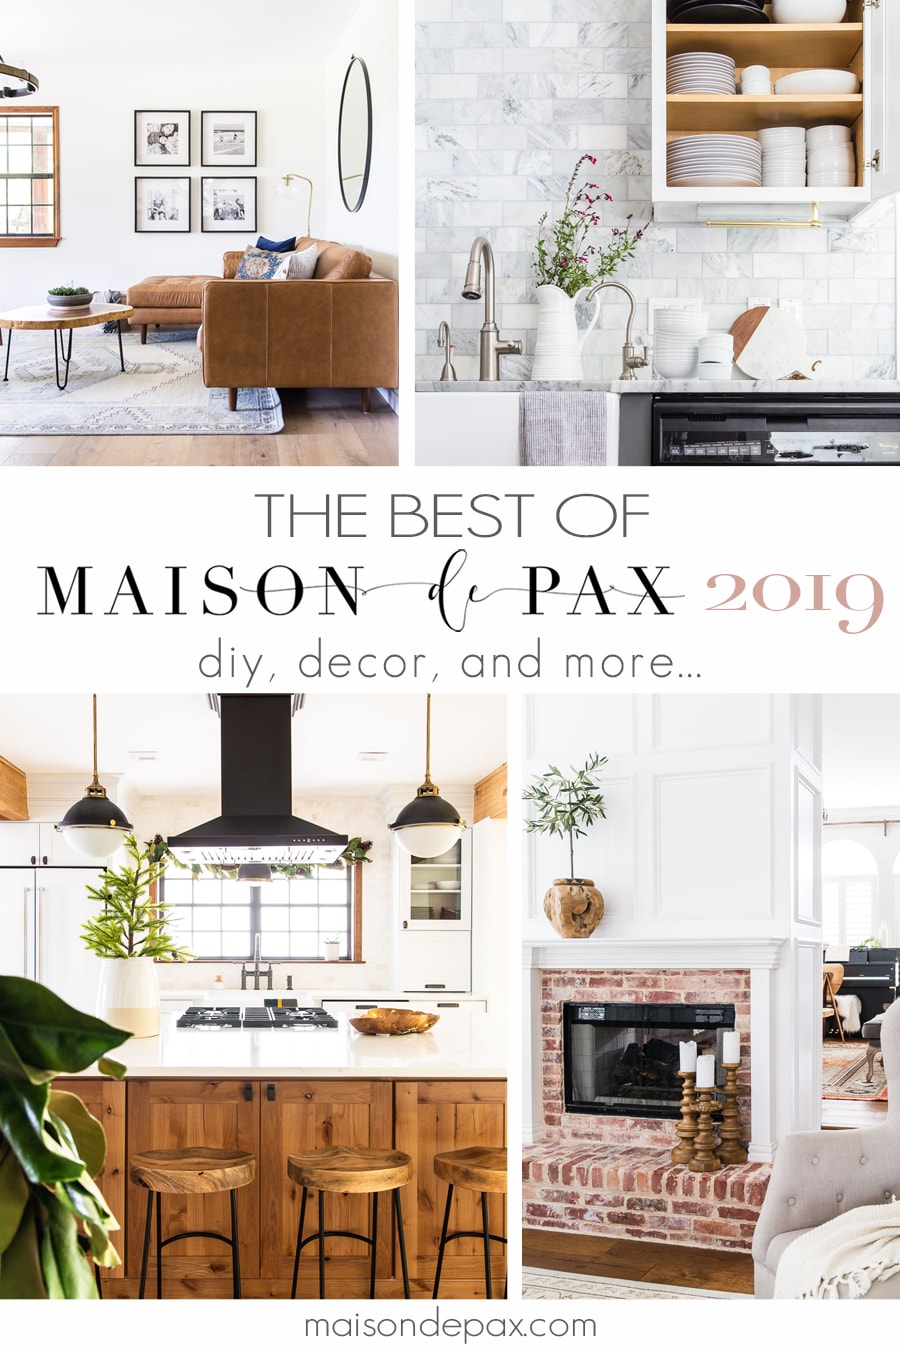 beautifully designed spaces with overlay: The Best of Maison de Pax 2019